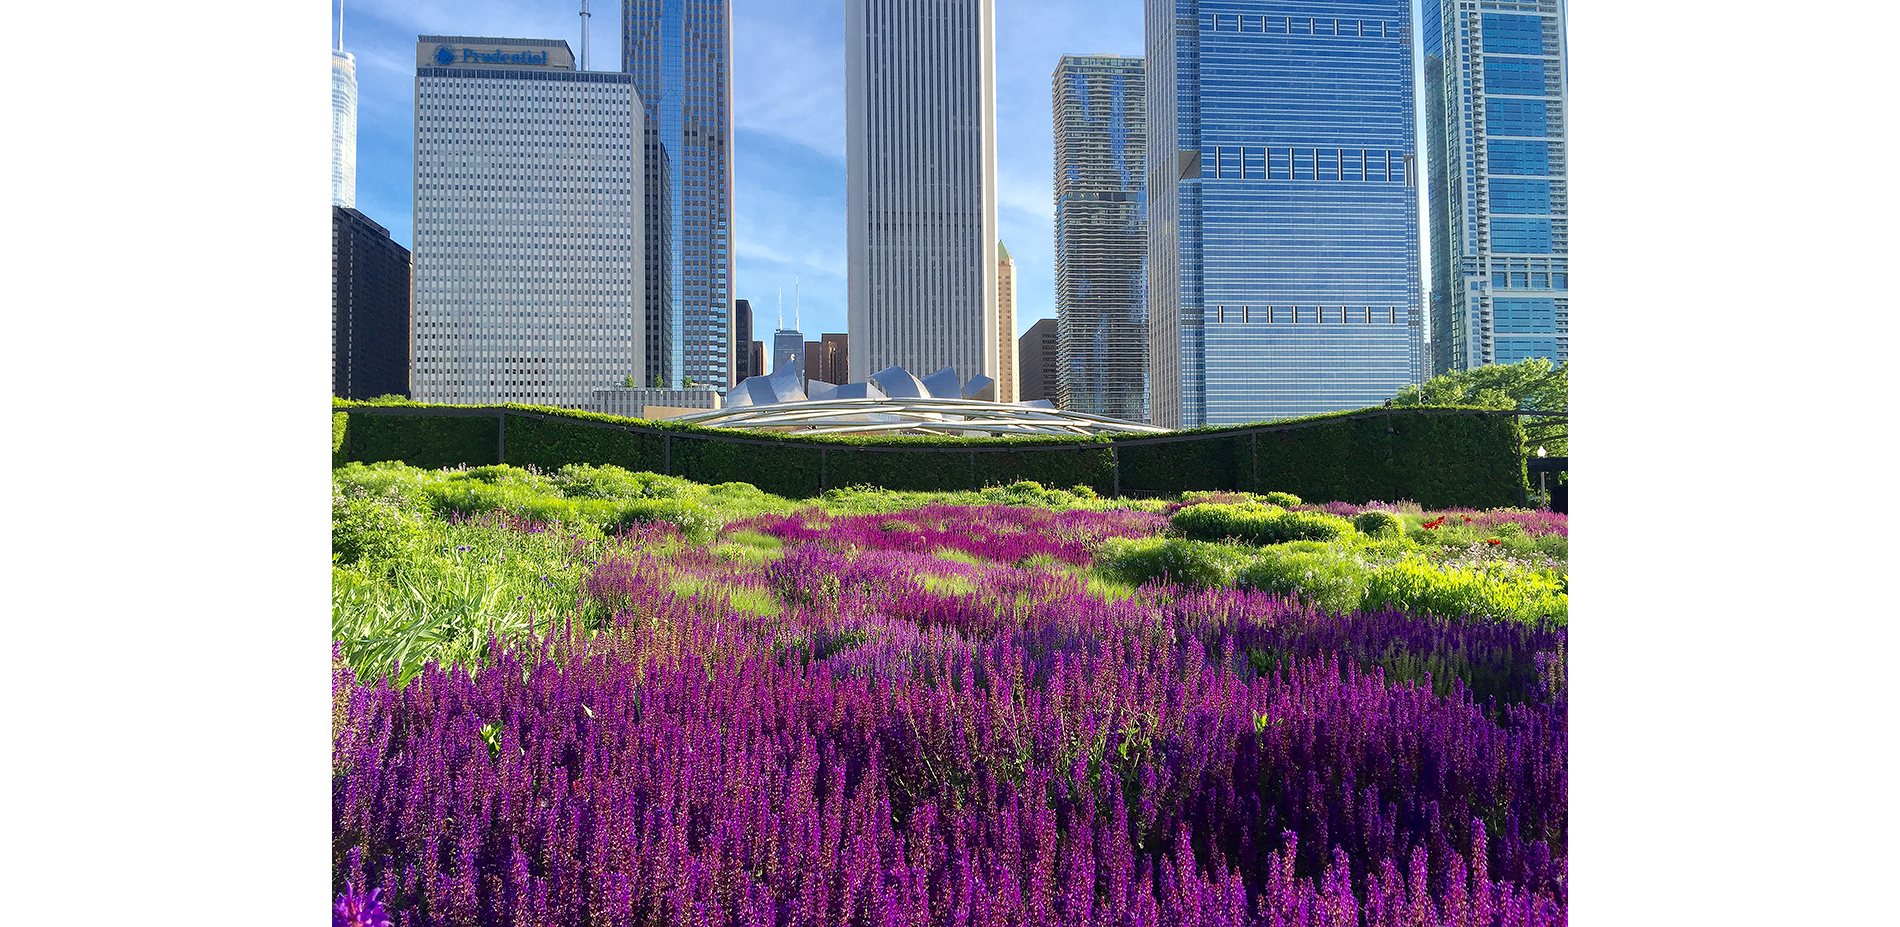 Lurie Garden's Salvia River with Jay Prtizker Pavilion in background